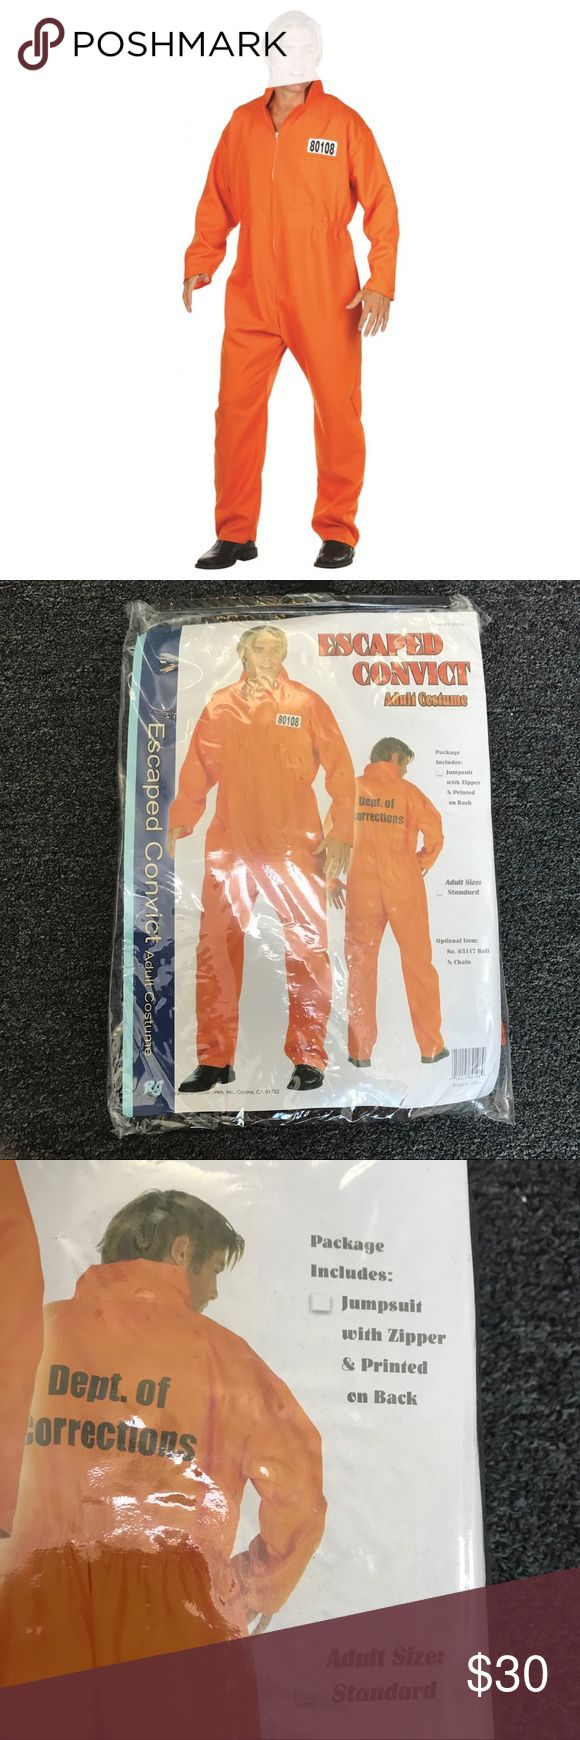 Adult Escaped Convict Costume Costume Includes: Orange prison jumpsuit with zipper and Dept. of Corrections printed on the back. One size fits most.   Only used once and in like new condition. Other